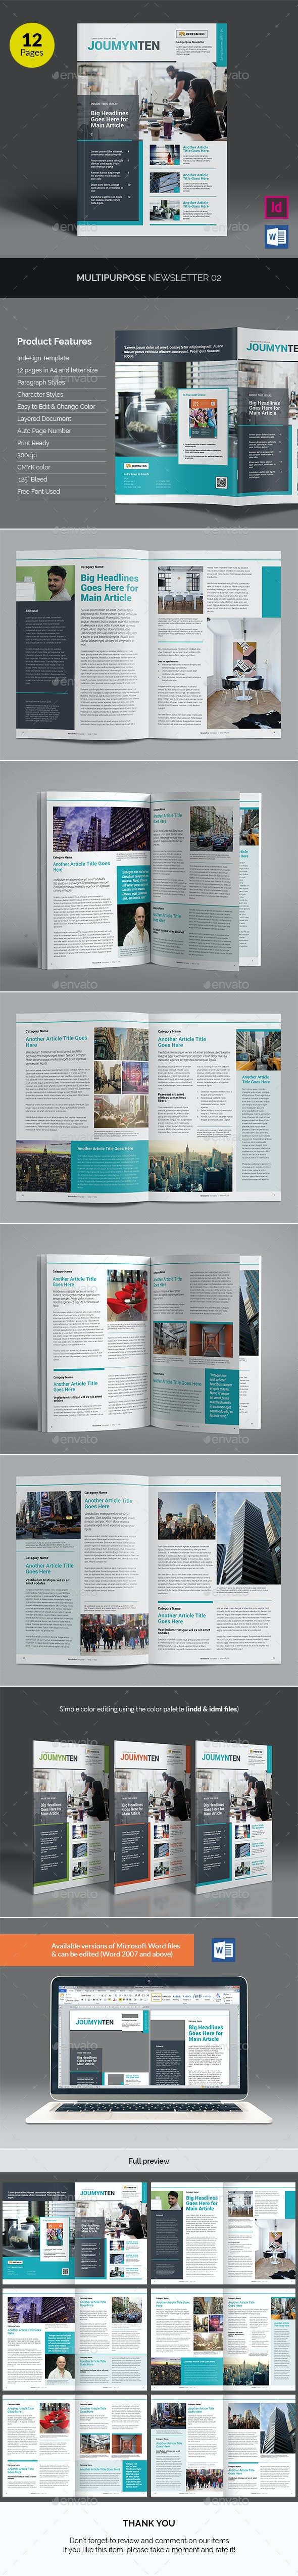 Multipurpose Newsletter v02 - Newsletters Print Templates